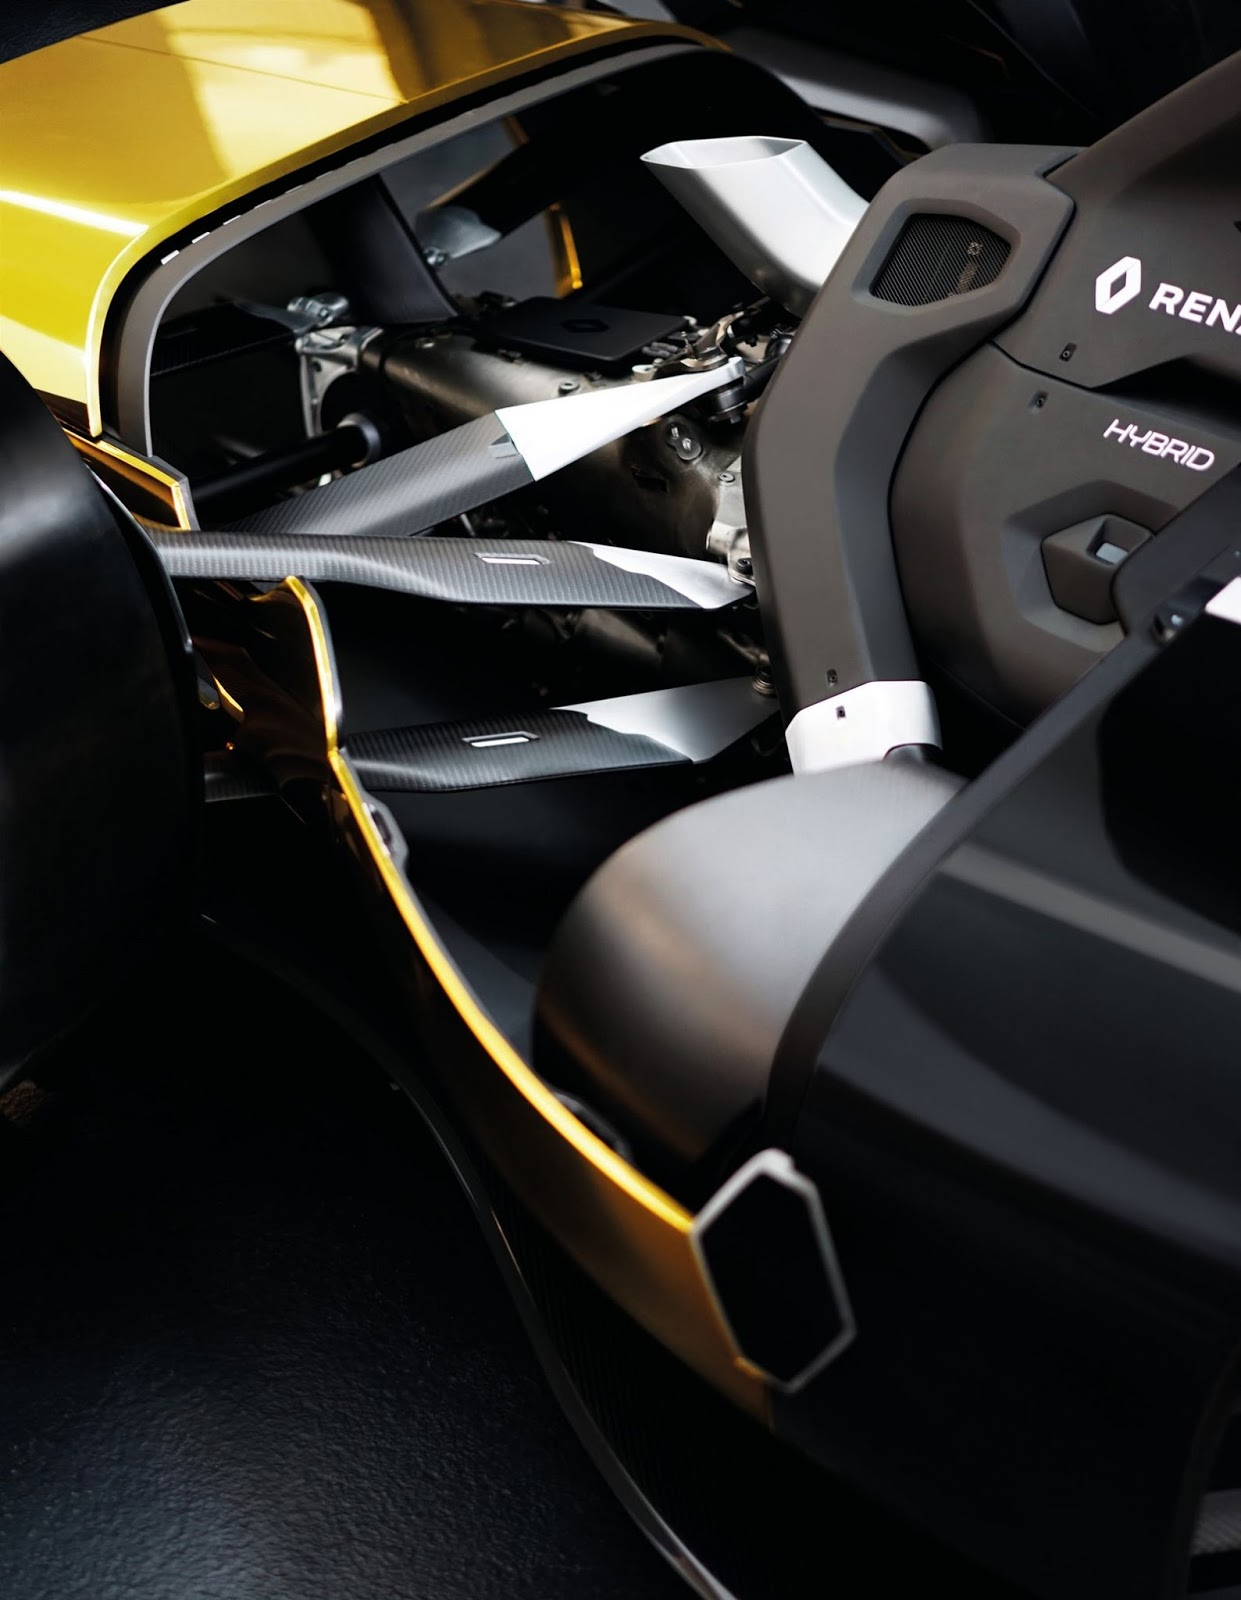 Renault RS 2027 Vision concept (56)